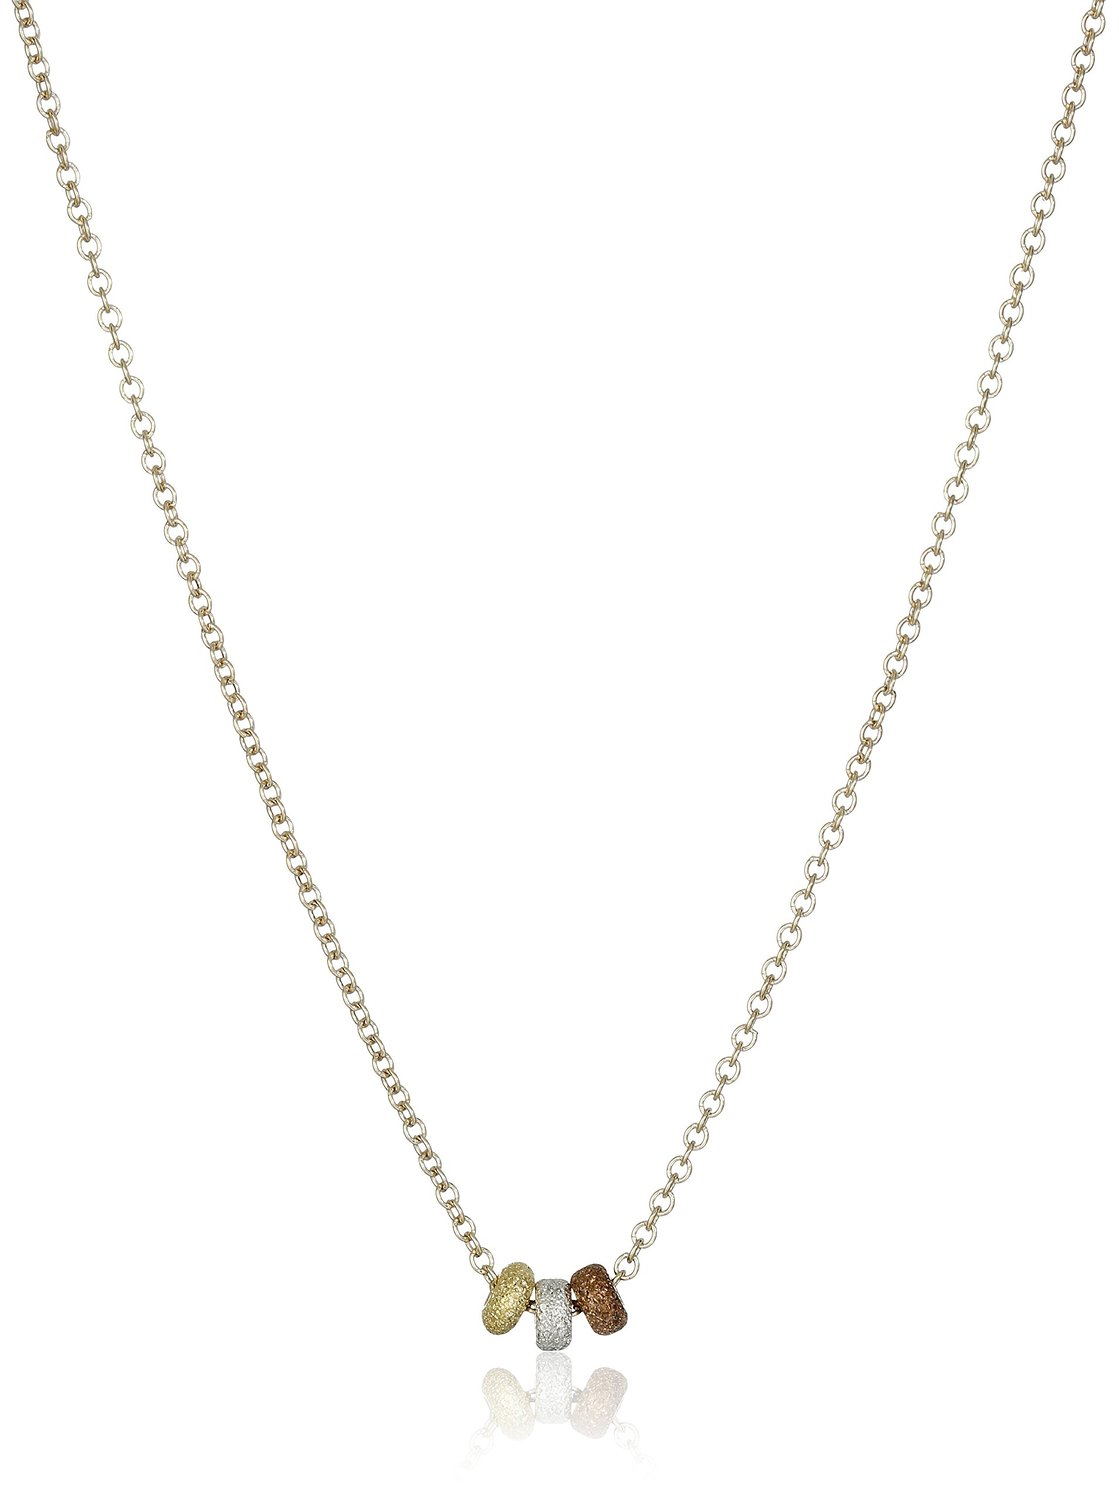 Dogeared 3 Wishes Mixed Metals Stardust Bead Necklace - VM2106